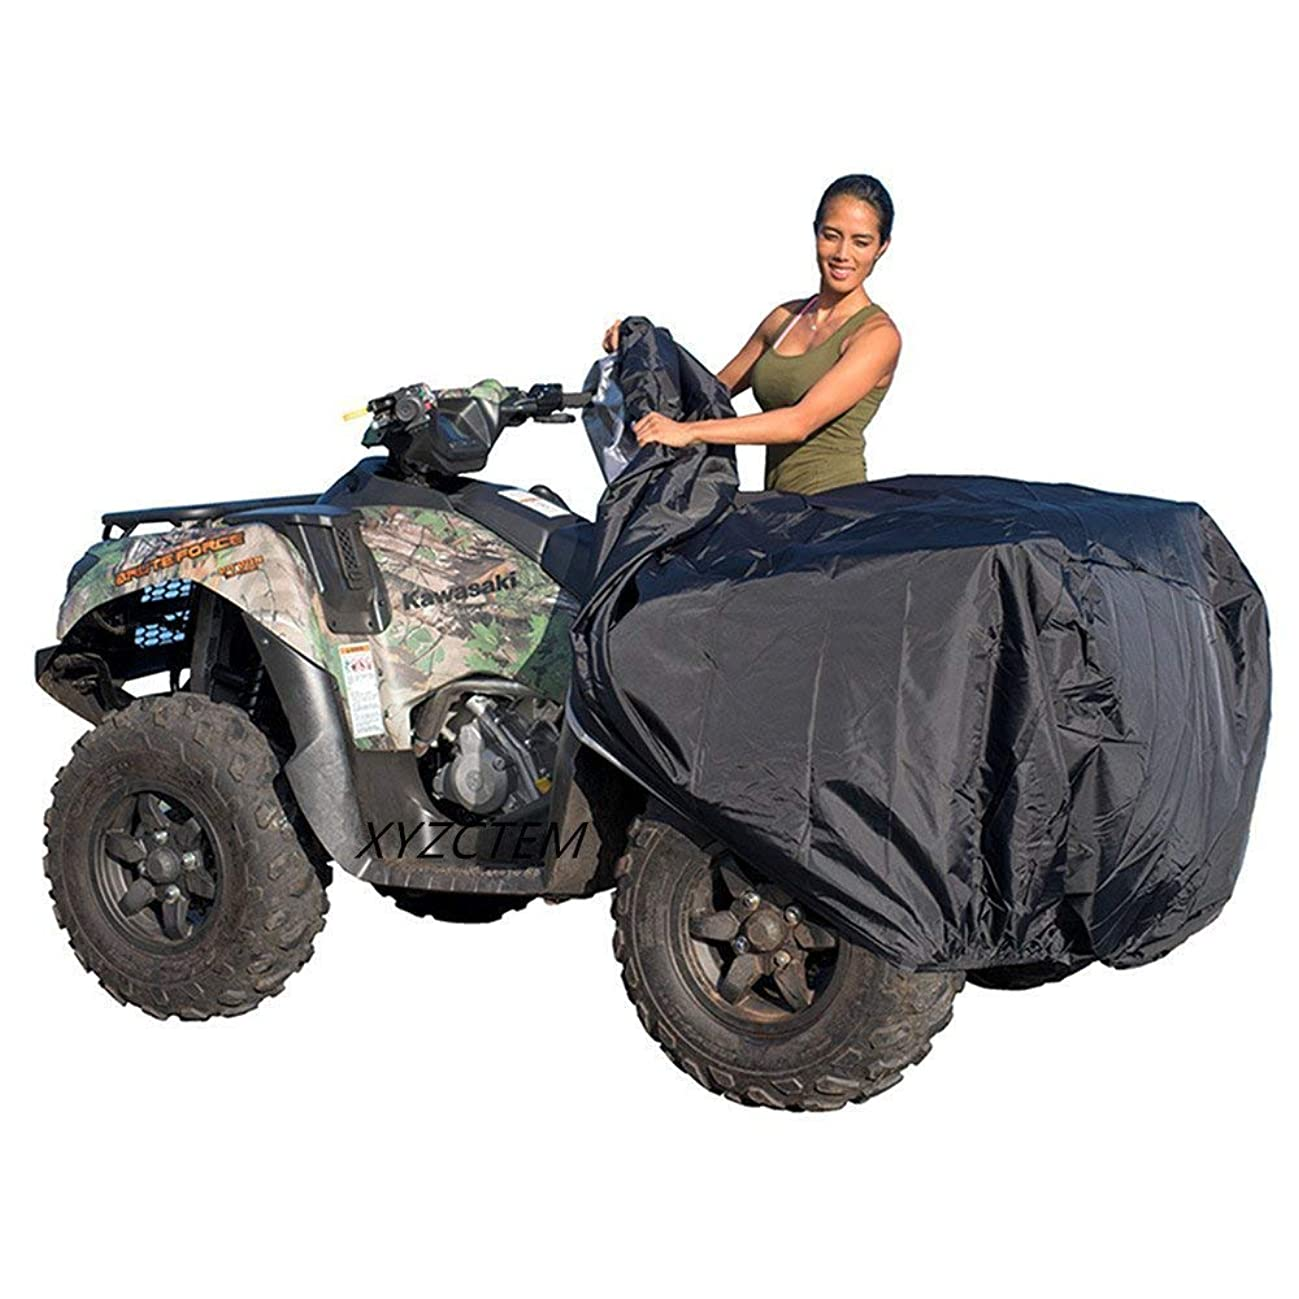 XYZCTEM Waterproof ATV Cover, Heavy Duty Black Protects 4 Wheeler From Snow Rain or Sun, Large Universal Size Fits 103 inch For Most Quads